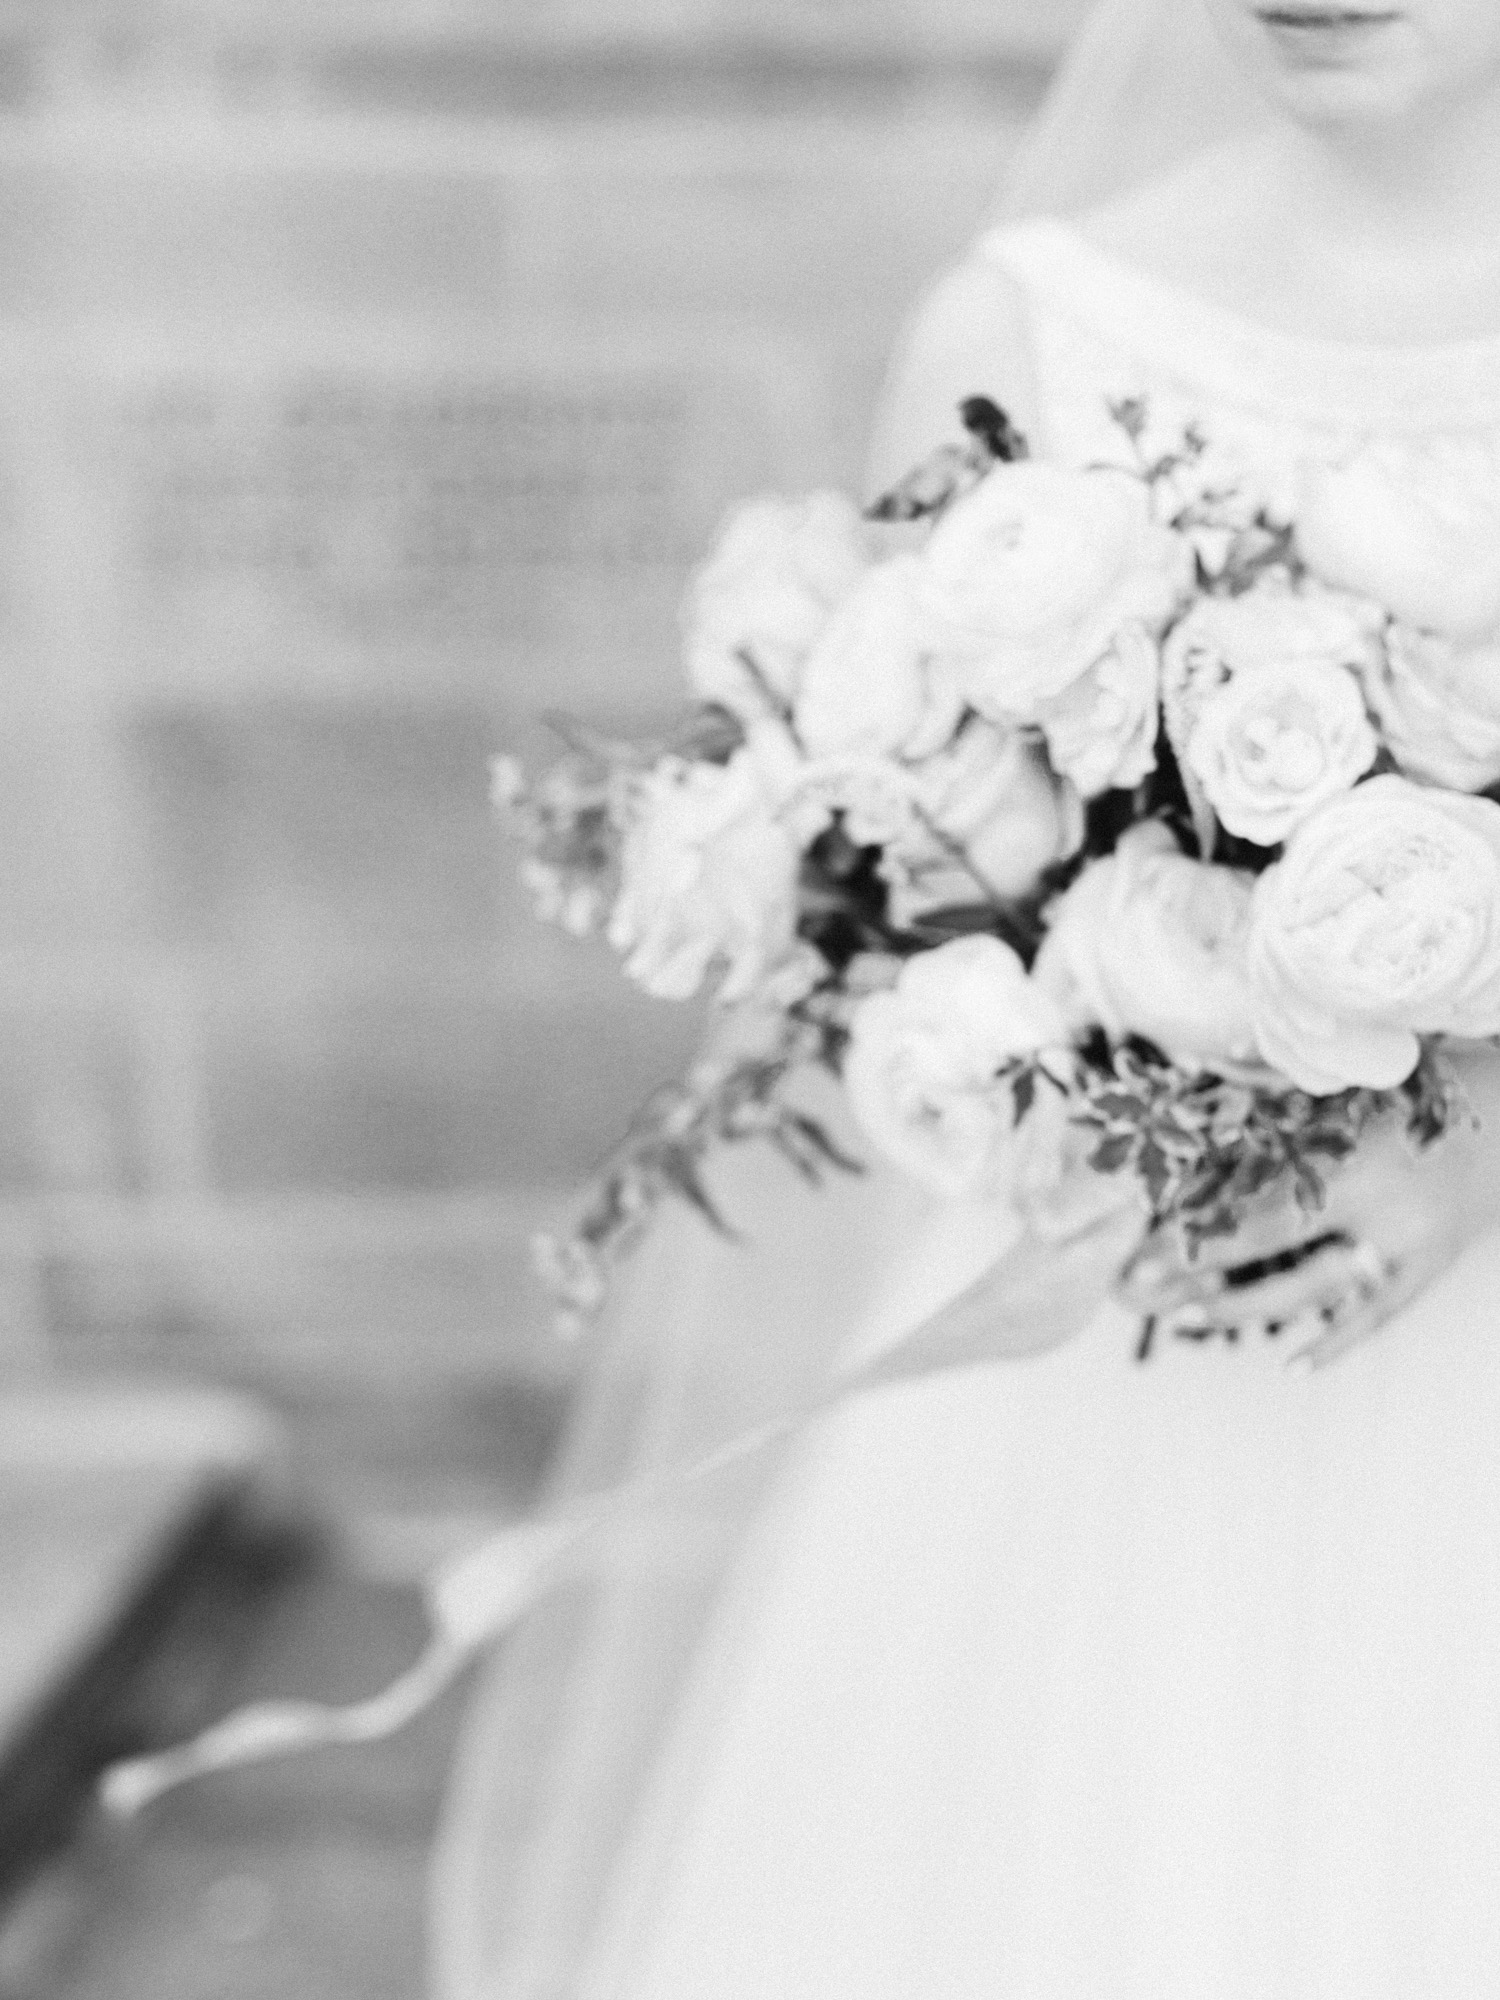 Wind blows the trailing silk ribbon in a bridal bouquet, captured in soft focus